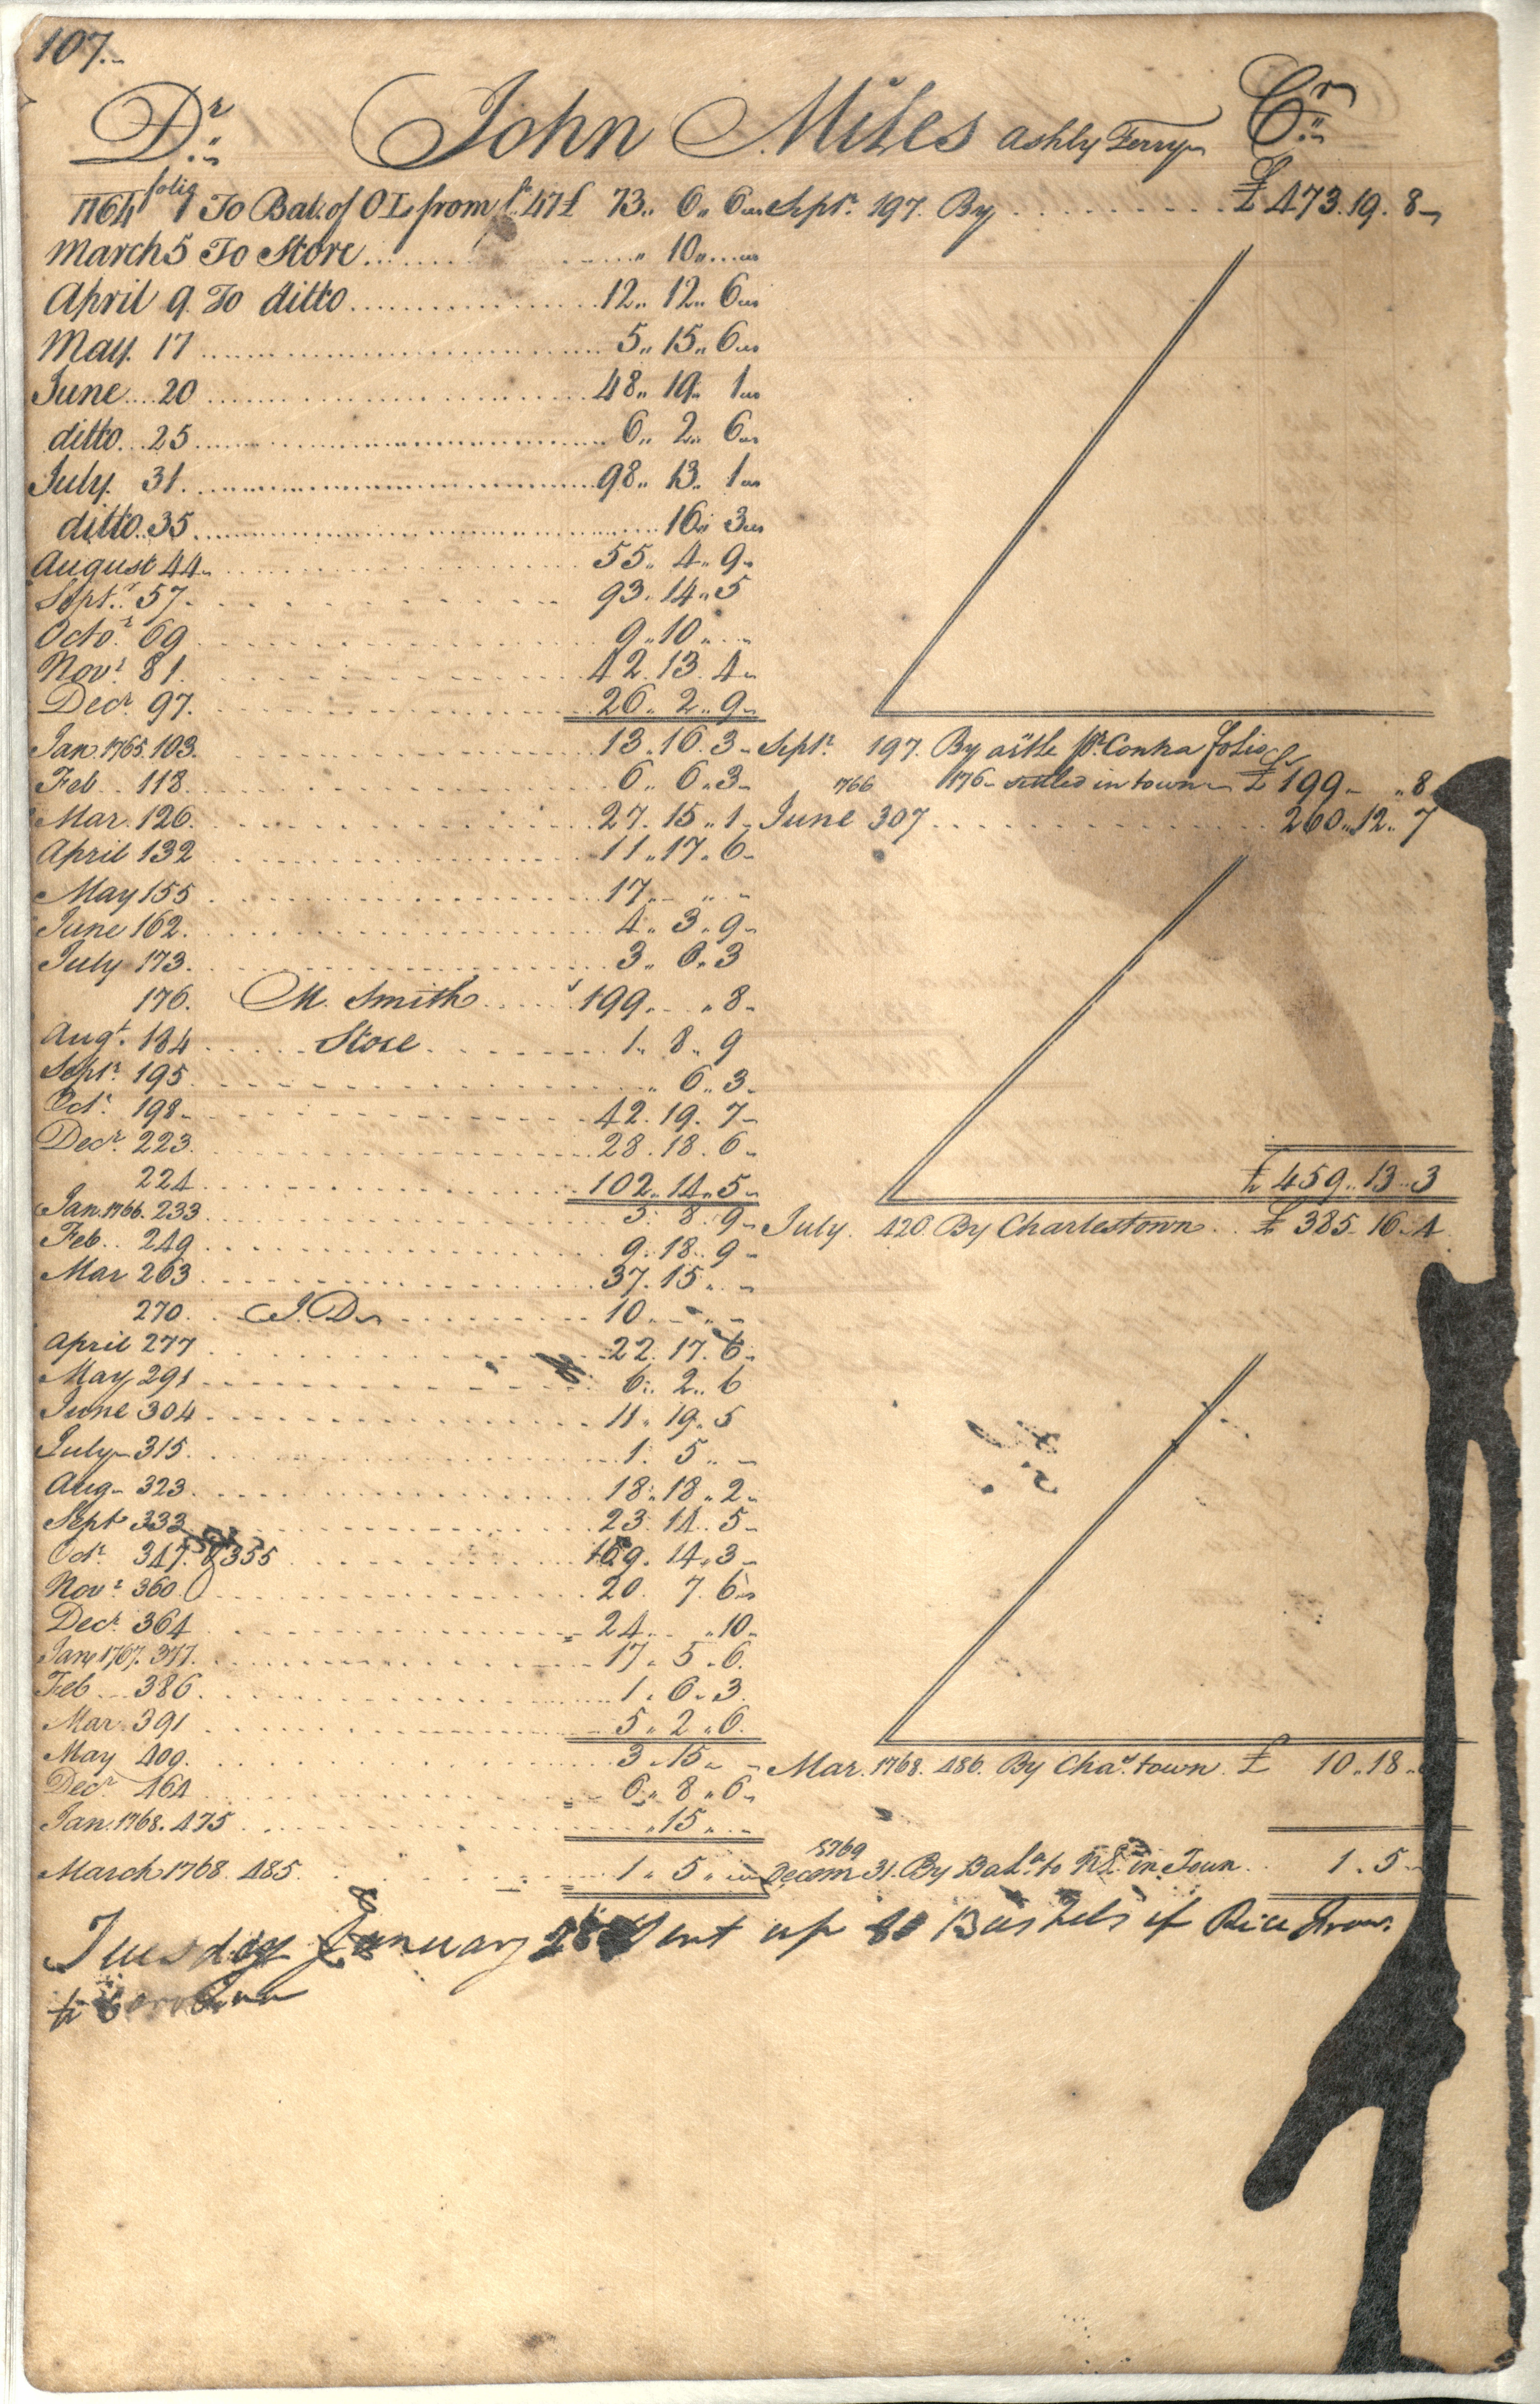 Plowden Weston's Business Ledger, page 107